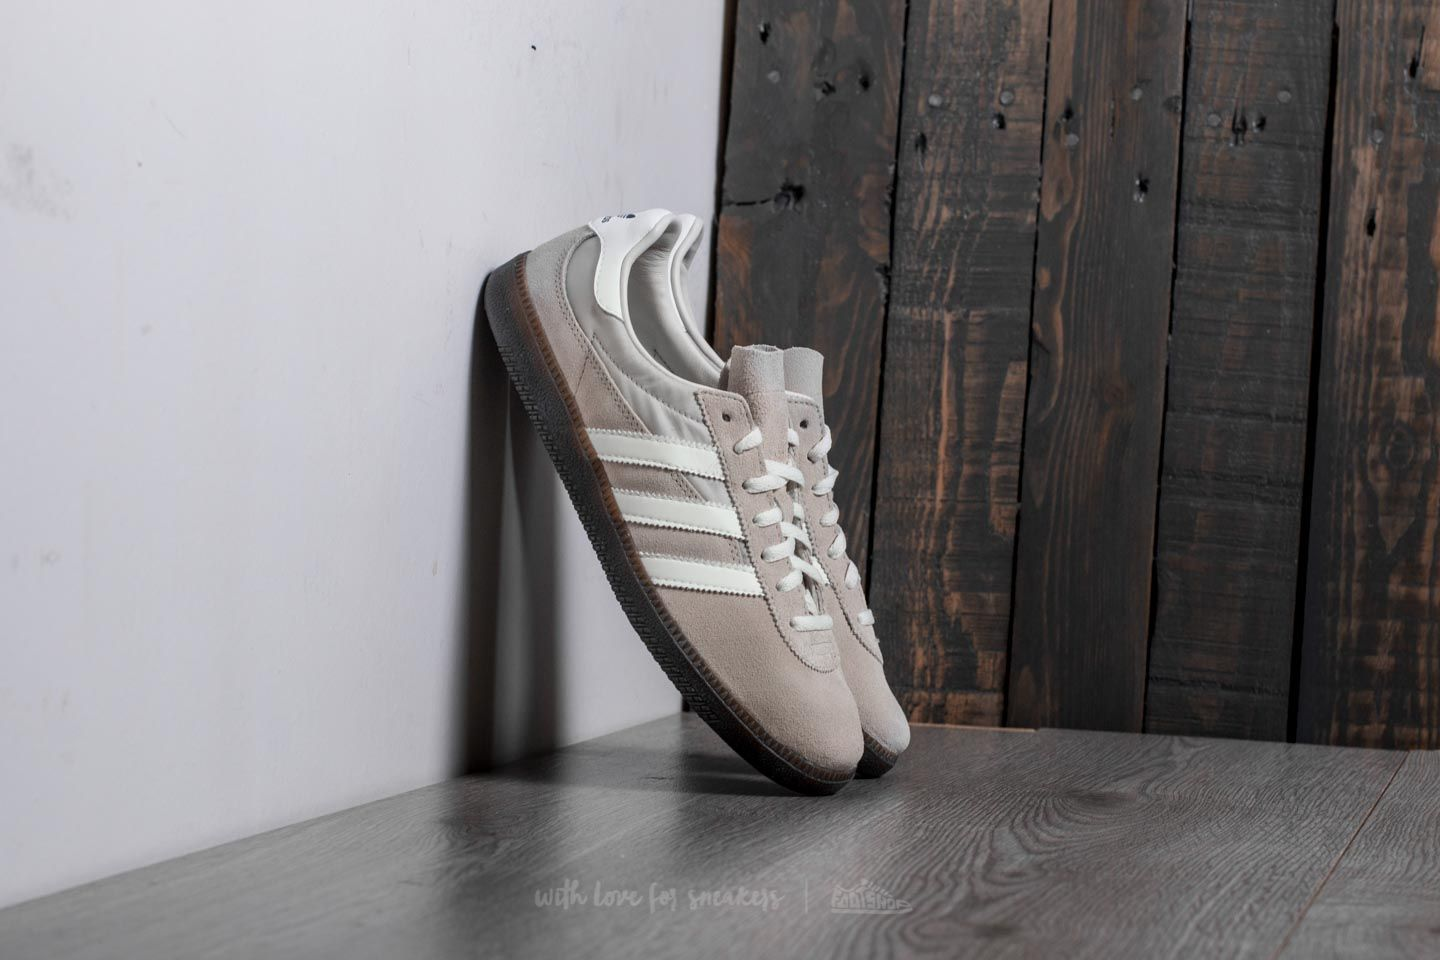 new arrival 9c992 3f6ec adidas GT Wensley Spezial. Clear Brown Off White Clear Granite